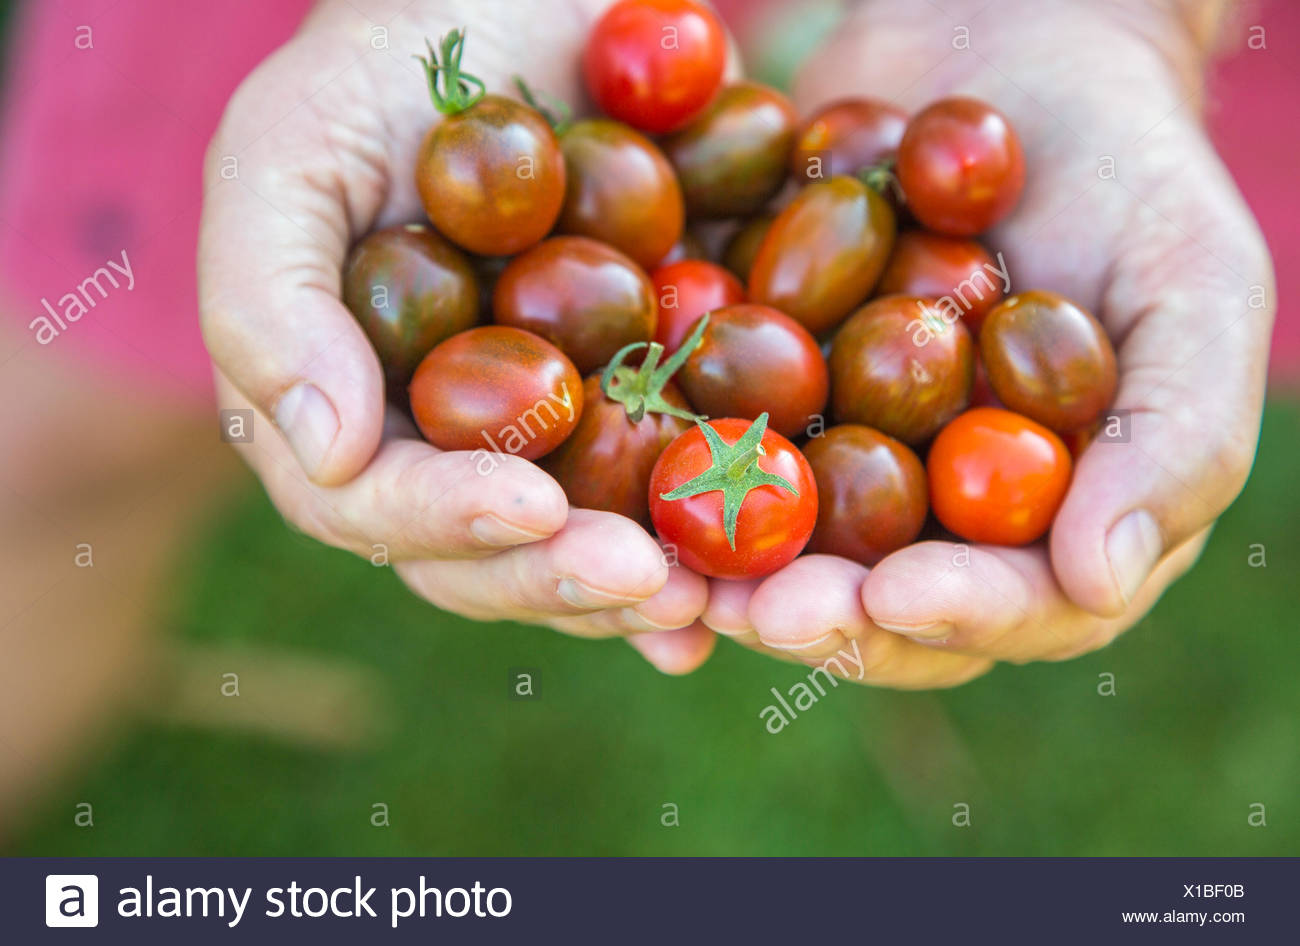 homegrown just picked cherry tomatoes held in the hand - Stock Image